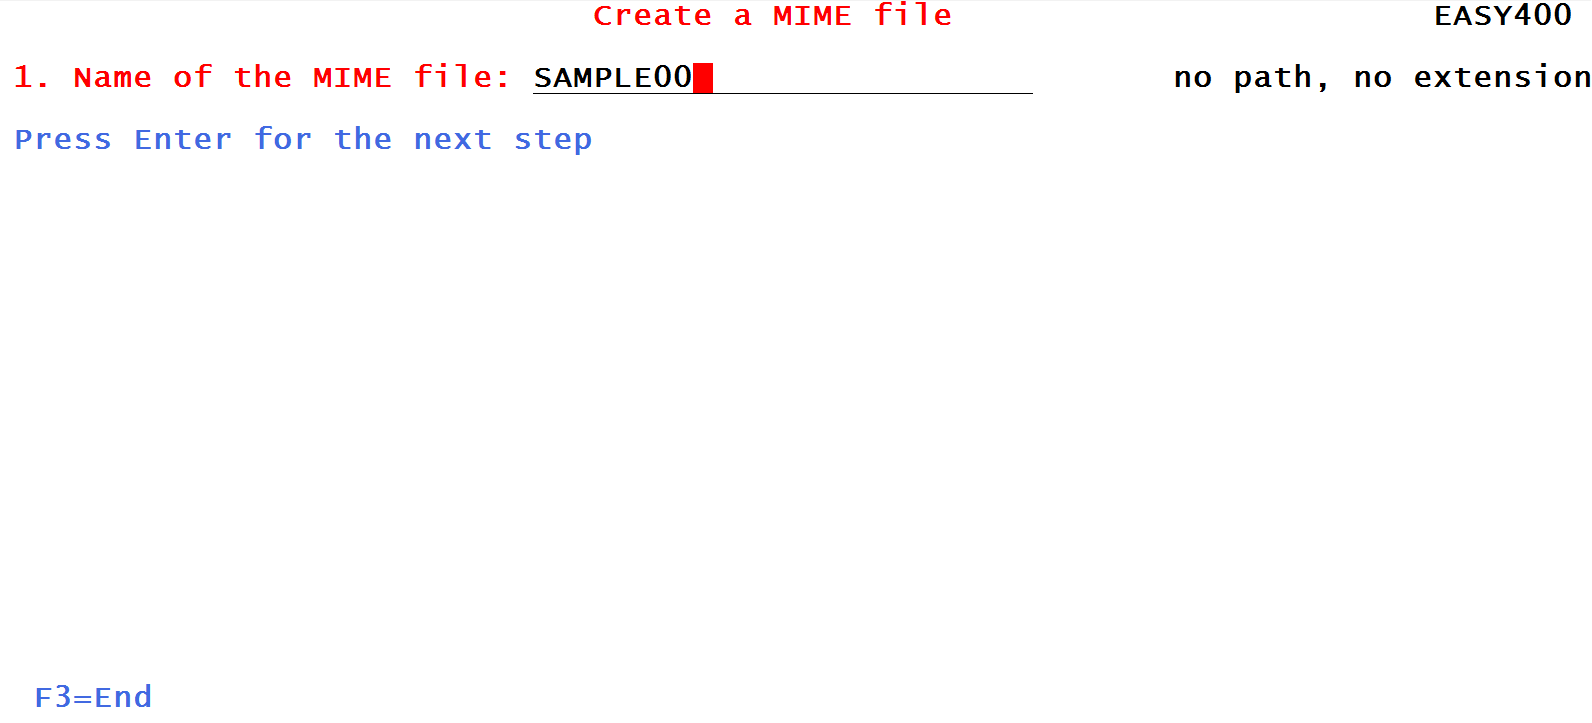 Create and send a MIME file